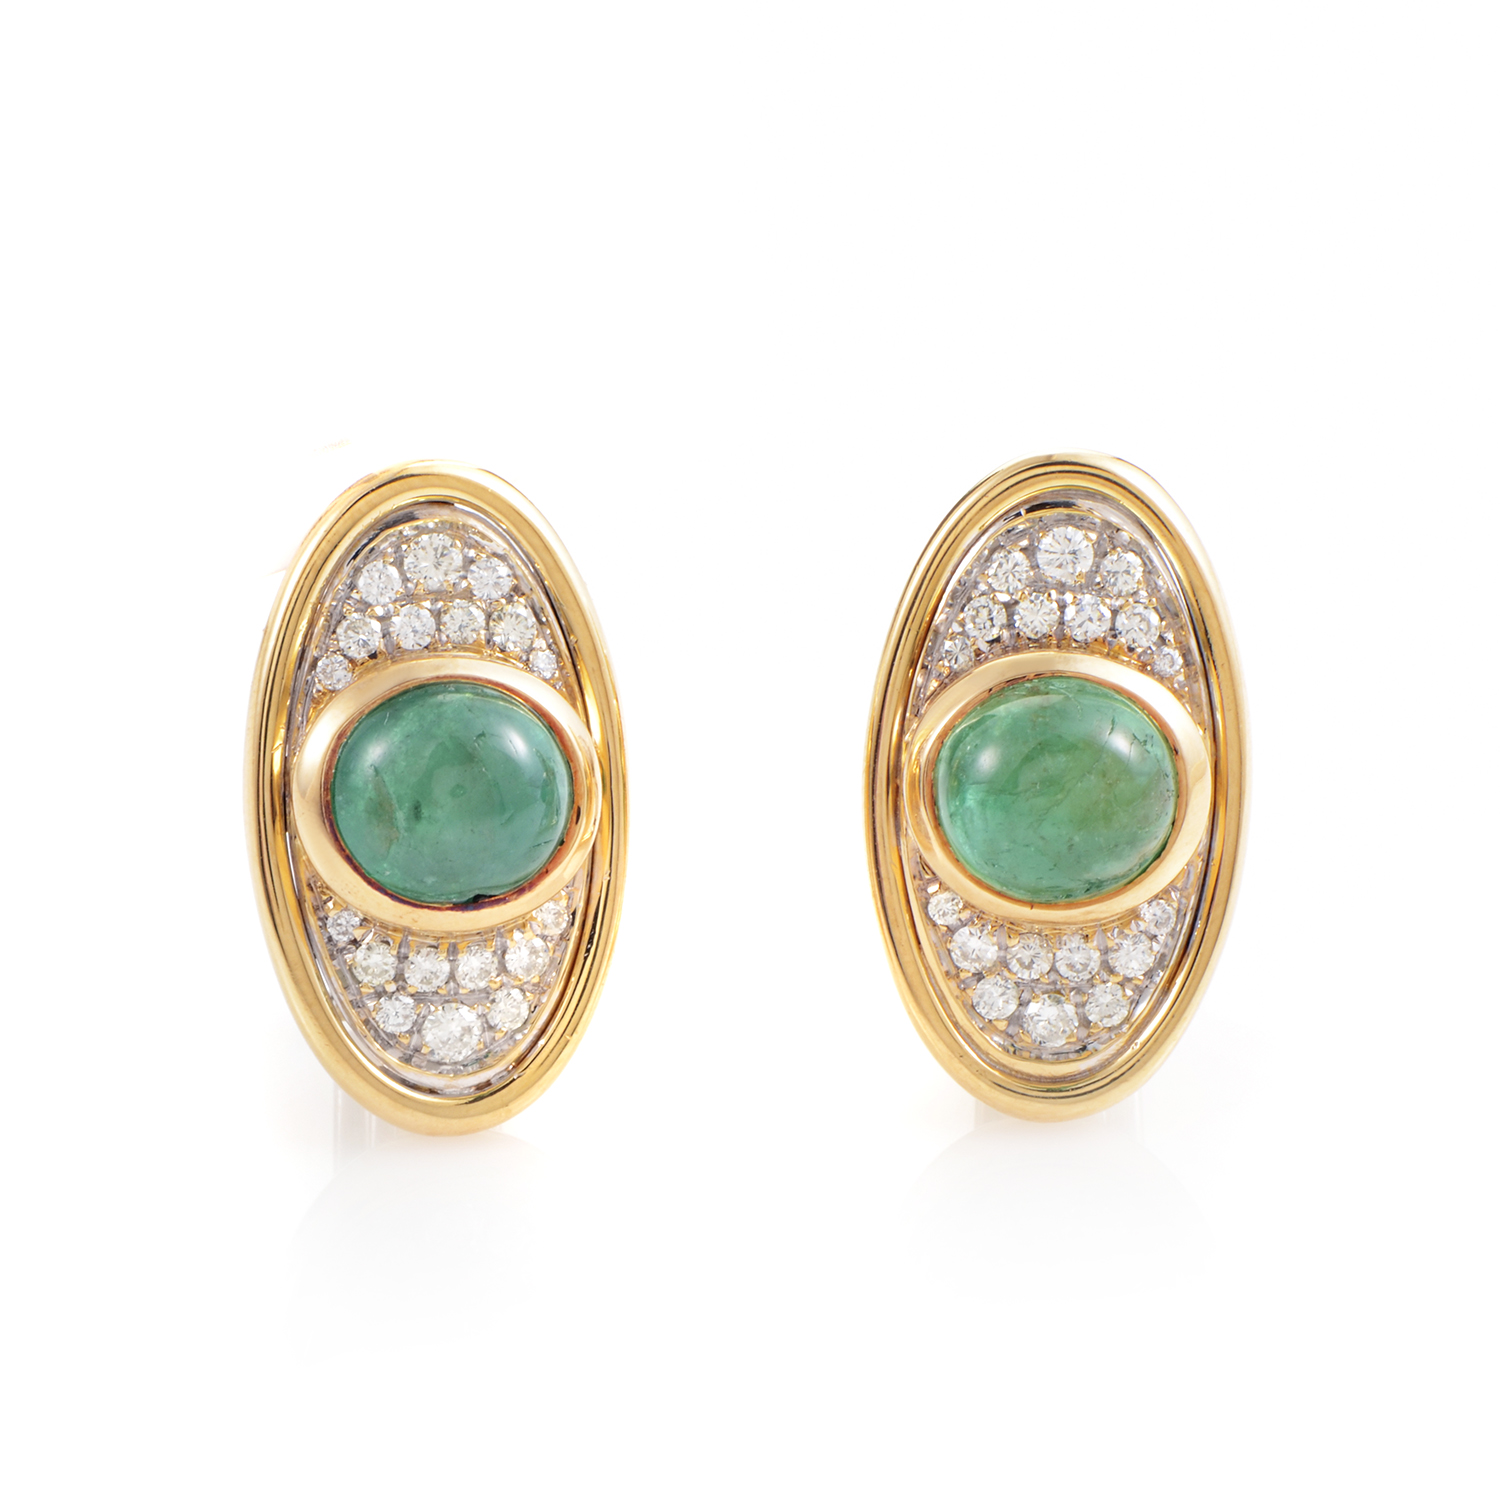 Faraone Mennella 18K Multi-Tone Gold Emerald & Diamond Clip-on Earrings